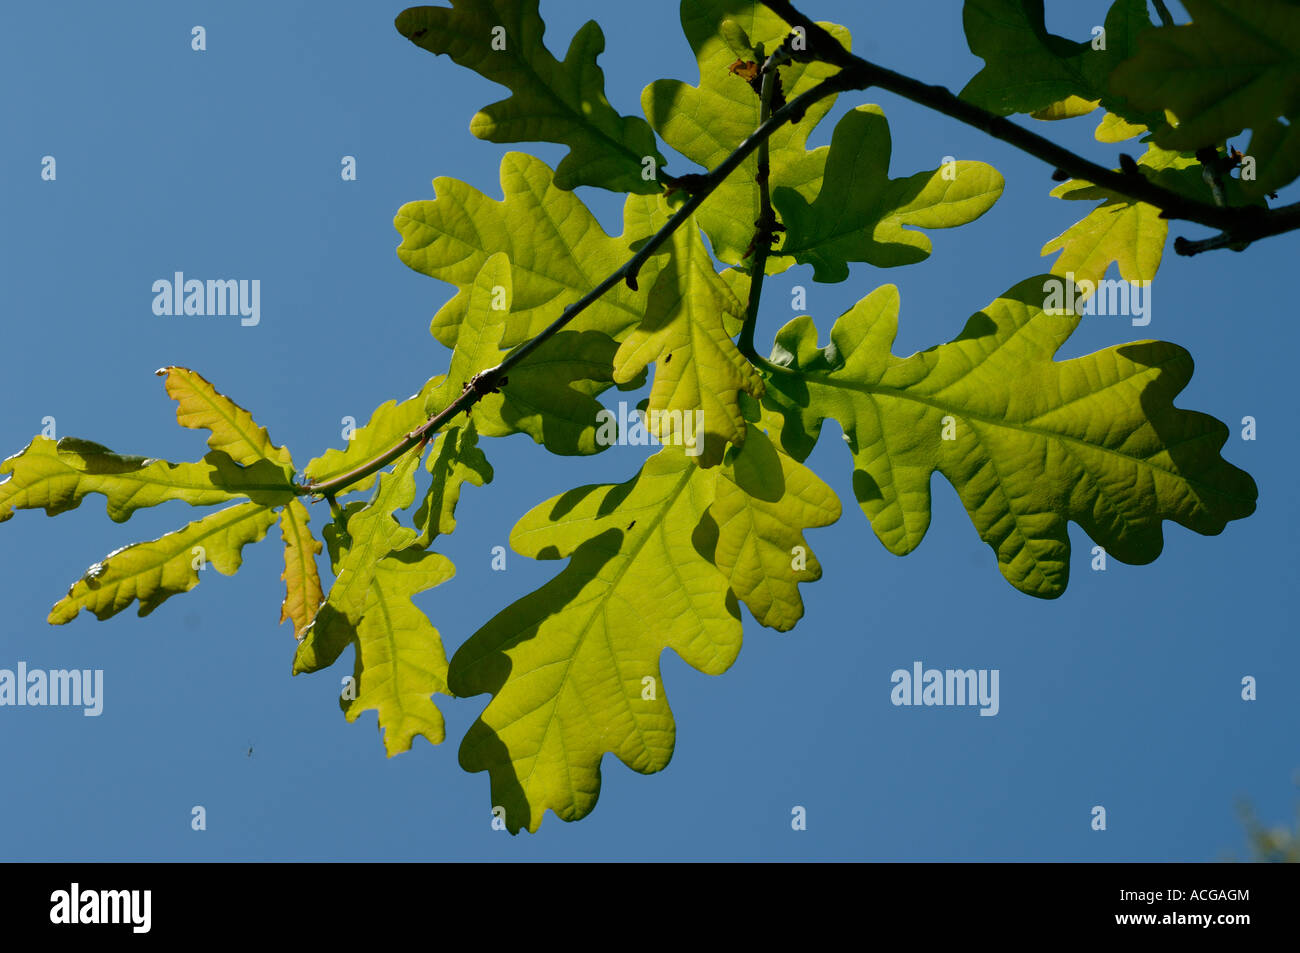 Young oak tree Quercus robur leaves backlit against against a blue spring sky - Stock Image